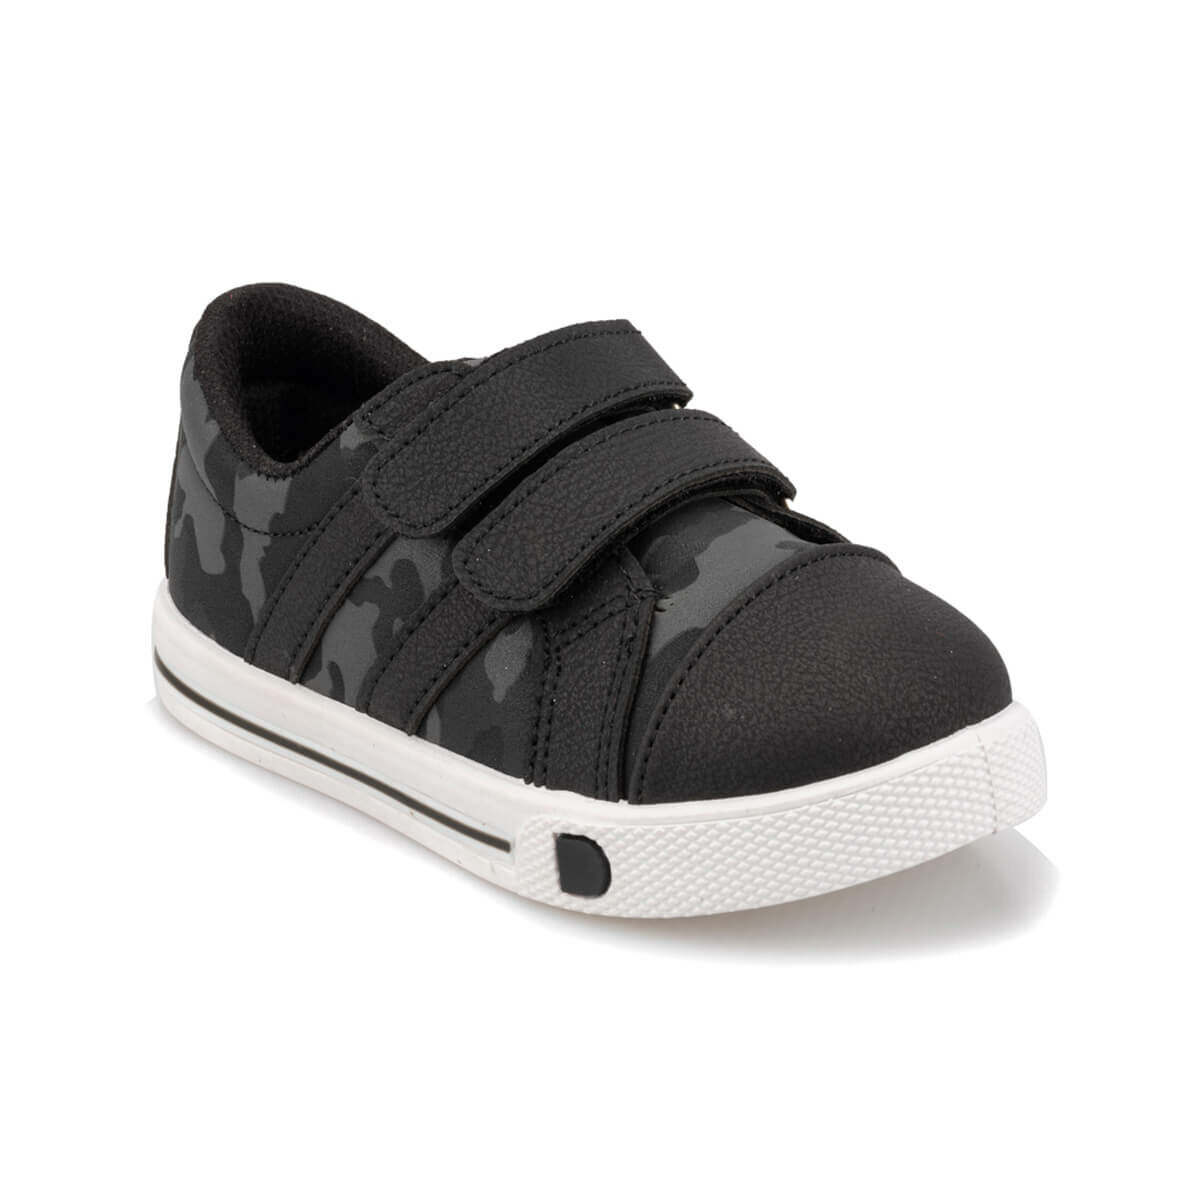 FLO 92.511714.B Black Male Child Sneaker Shoes Polaris